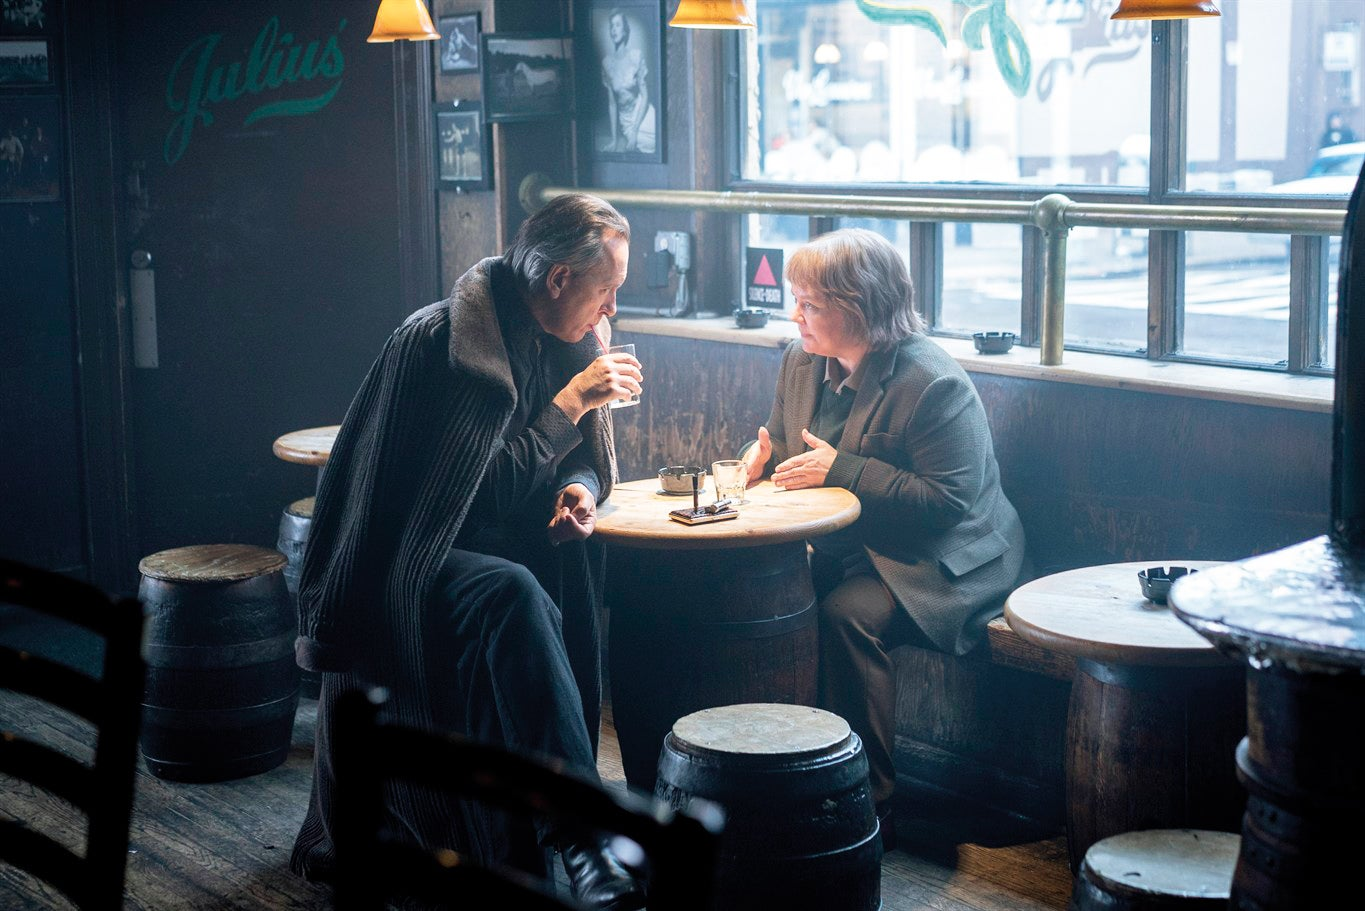 Marielle Heller's joyous comedy Can You Ever Forgive Me? positively glows